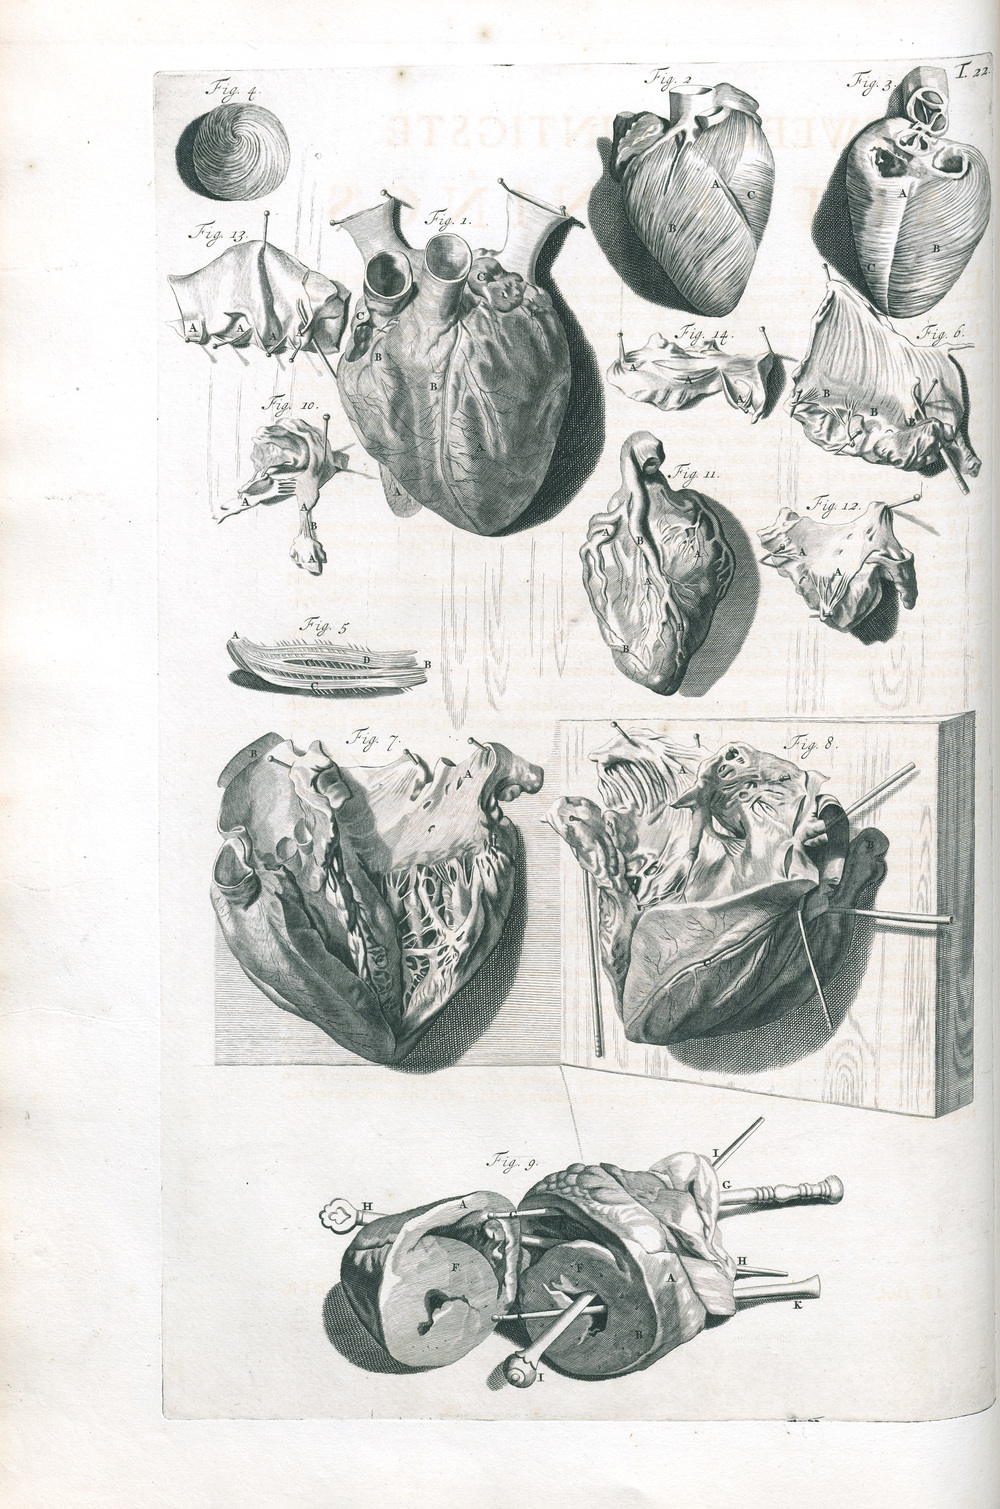 Plate 22 showing the dissection of the heart. Check out those decorative probes!  Govard Bidloo (1649-1713).  Anatomia humani corporis.  Amsterdam: Sumptibus viduae Joannis à Someren, haeredum Joannis à Dyk, Henrici & viduae Theodori Boom, 1685. Heirs 724 Illustration by Gerard de Lairesse.